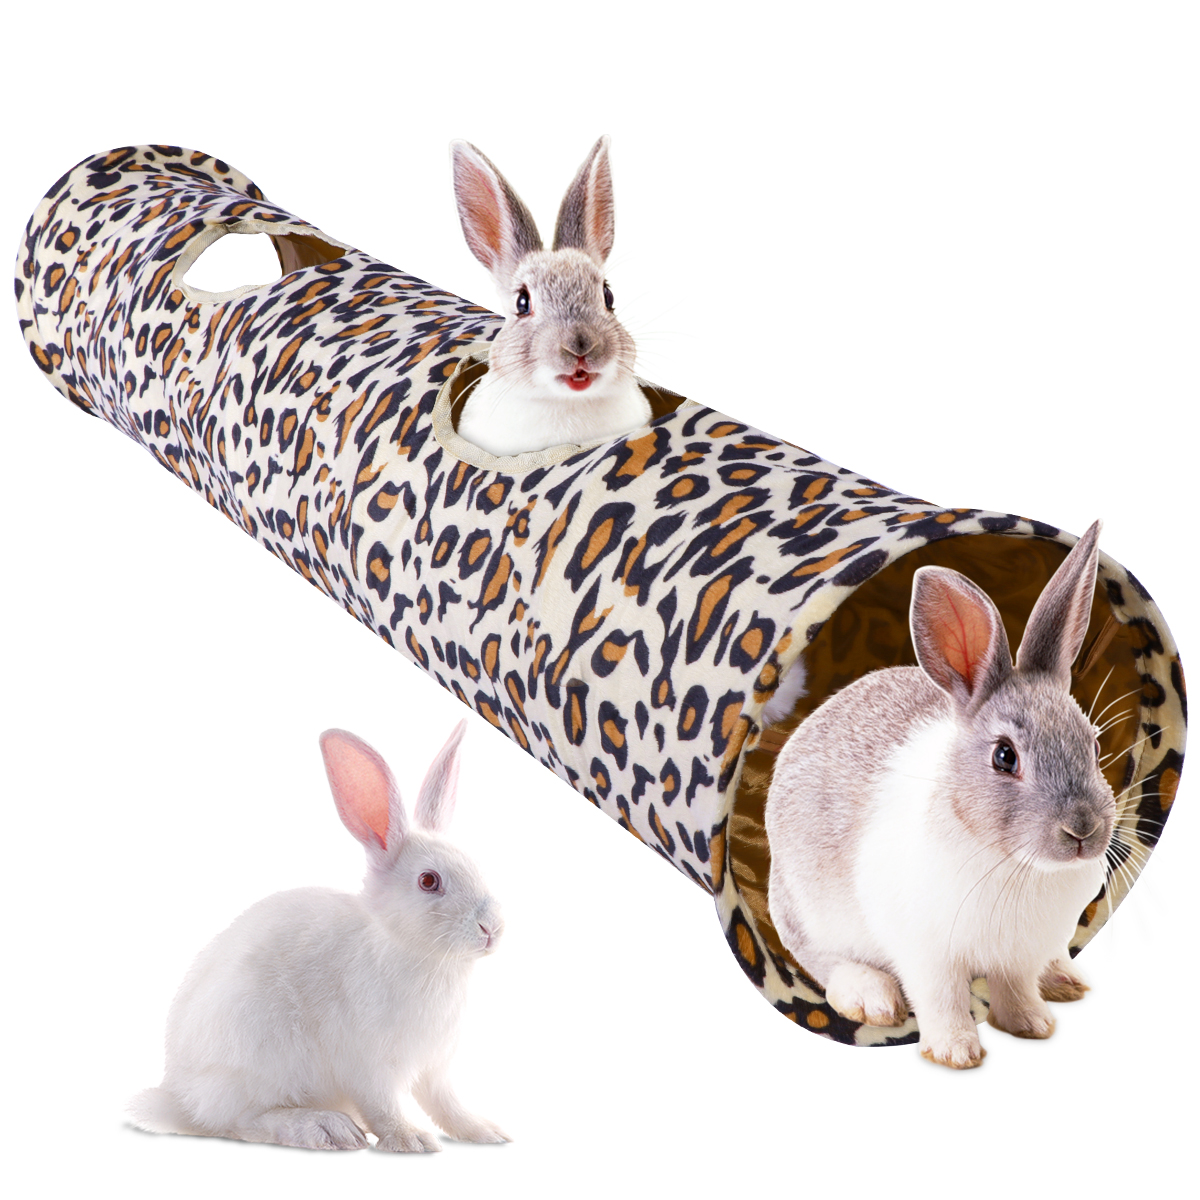 Pet Tunnel Leopard Print Pet Rabbit Play Tunnel Collapsible Tunnel Space-Saving Nontoxic Toys for Dogs Cat Rabbits 120x250 cm